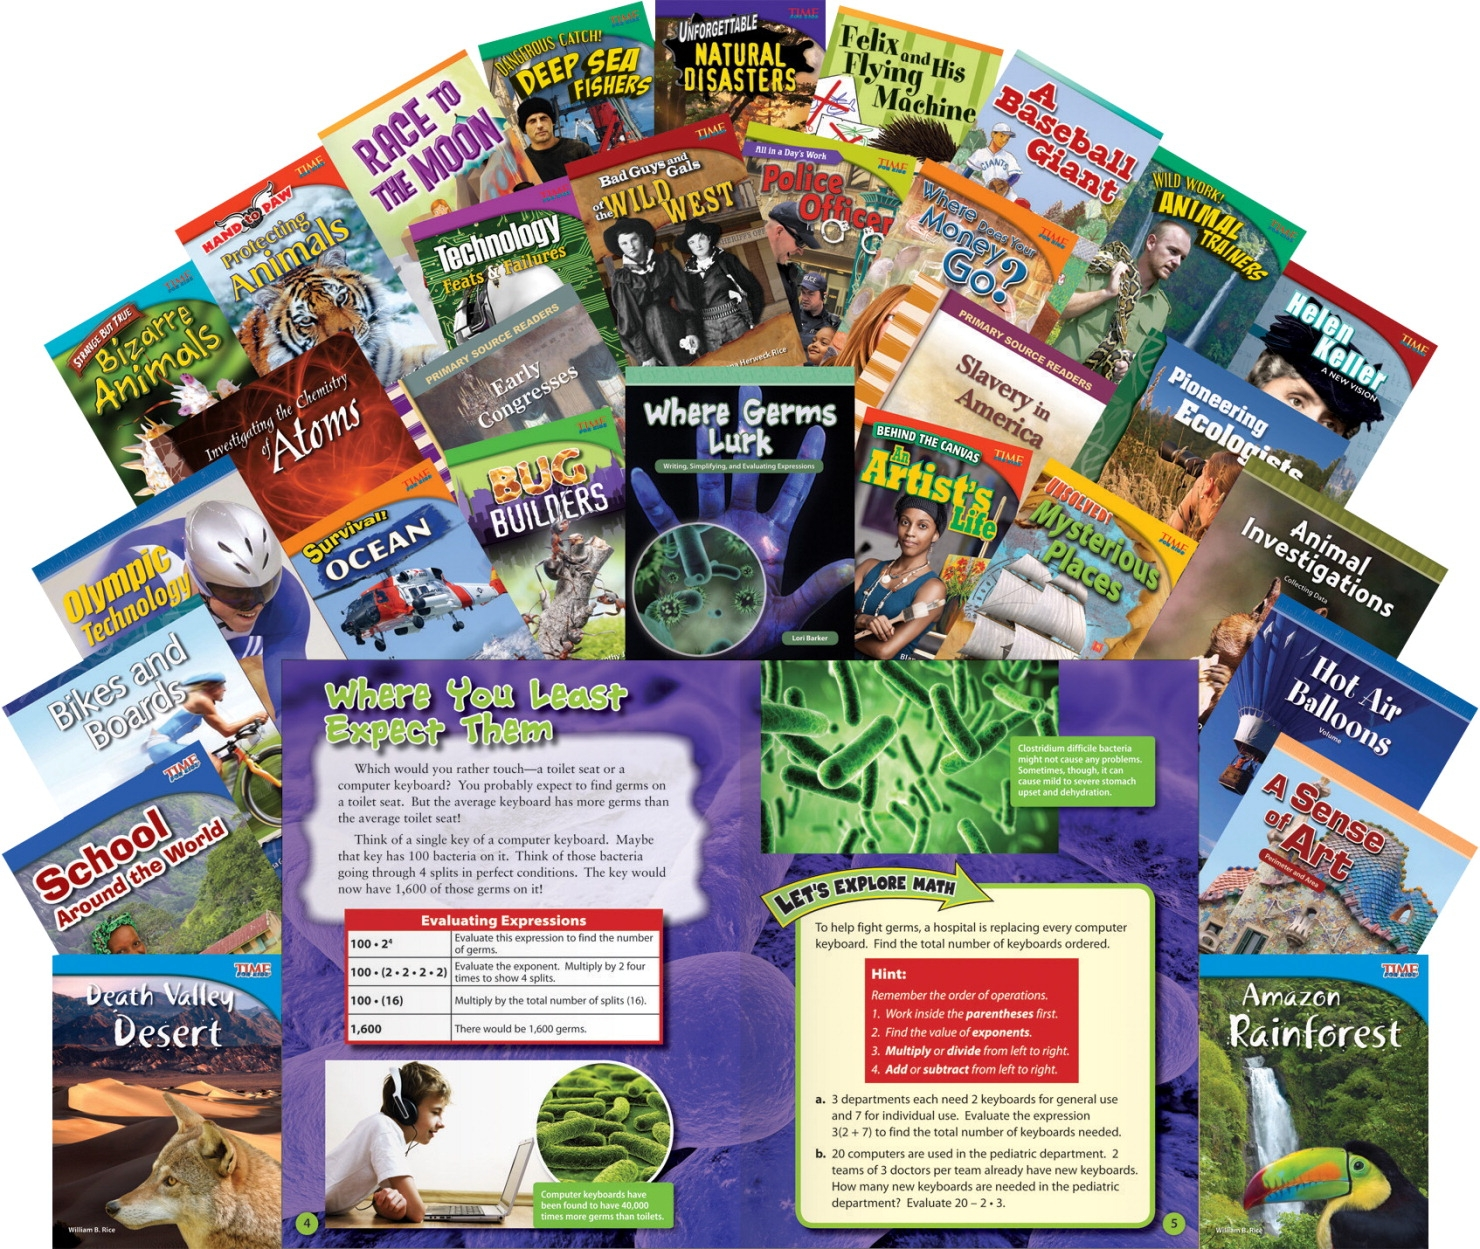 Teacher Created Materials Book Room Collection Book Set 4; Grades 3-5; Set Of 30 - 1495889 - Instructional Materials Resources Science Activities Equipment Physical Science Projects Books 1495889